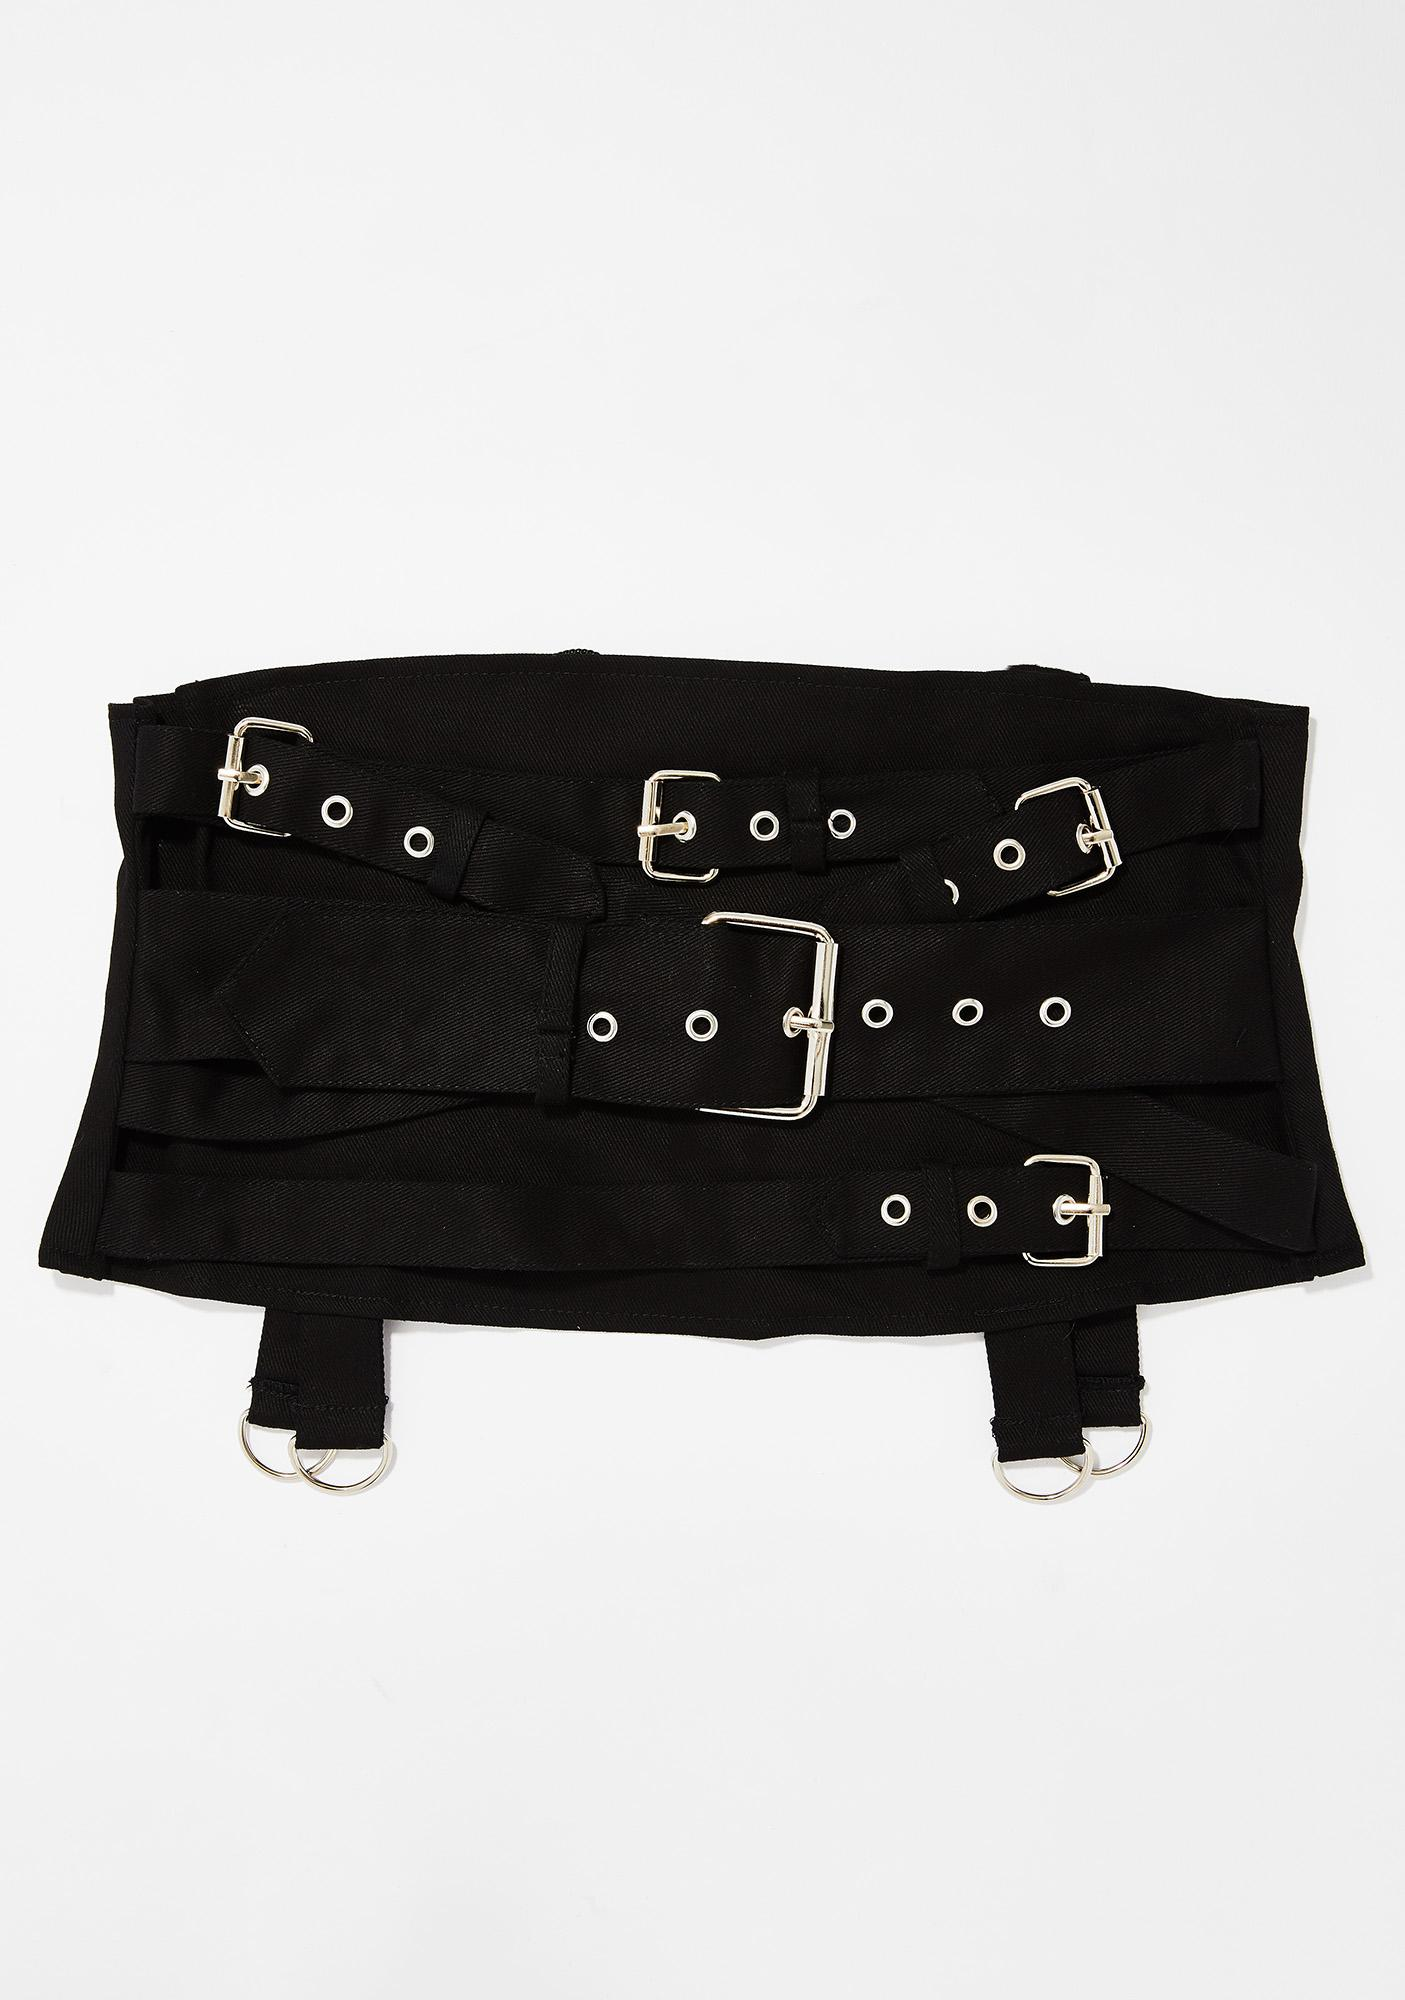 Necessary Evil Gothic Hel Pocket Multi Belt Cincher